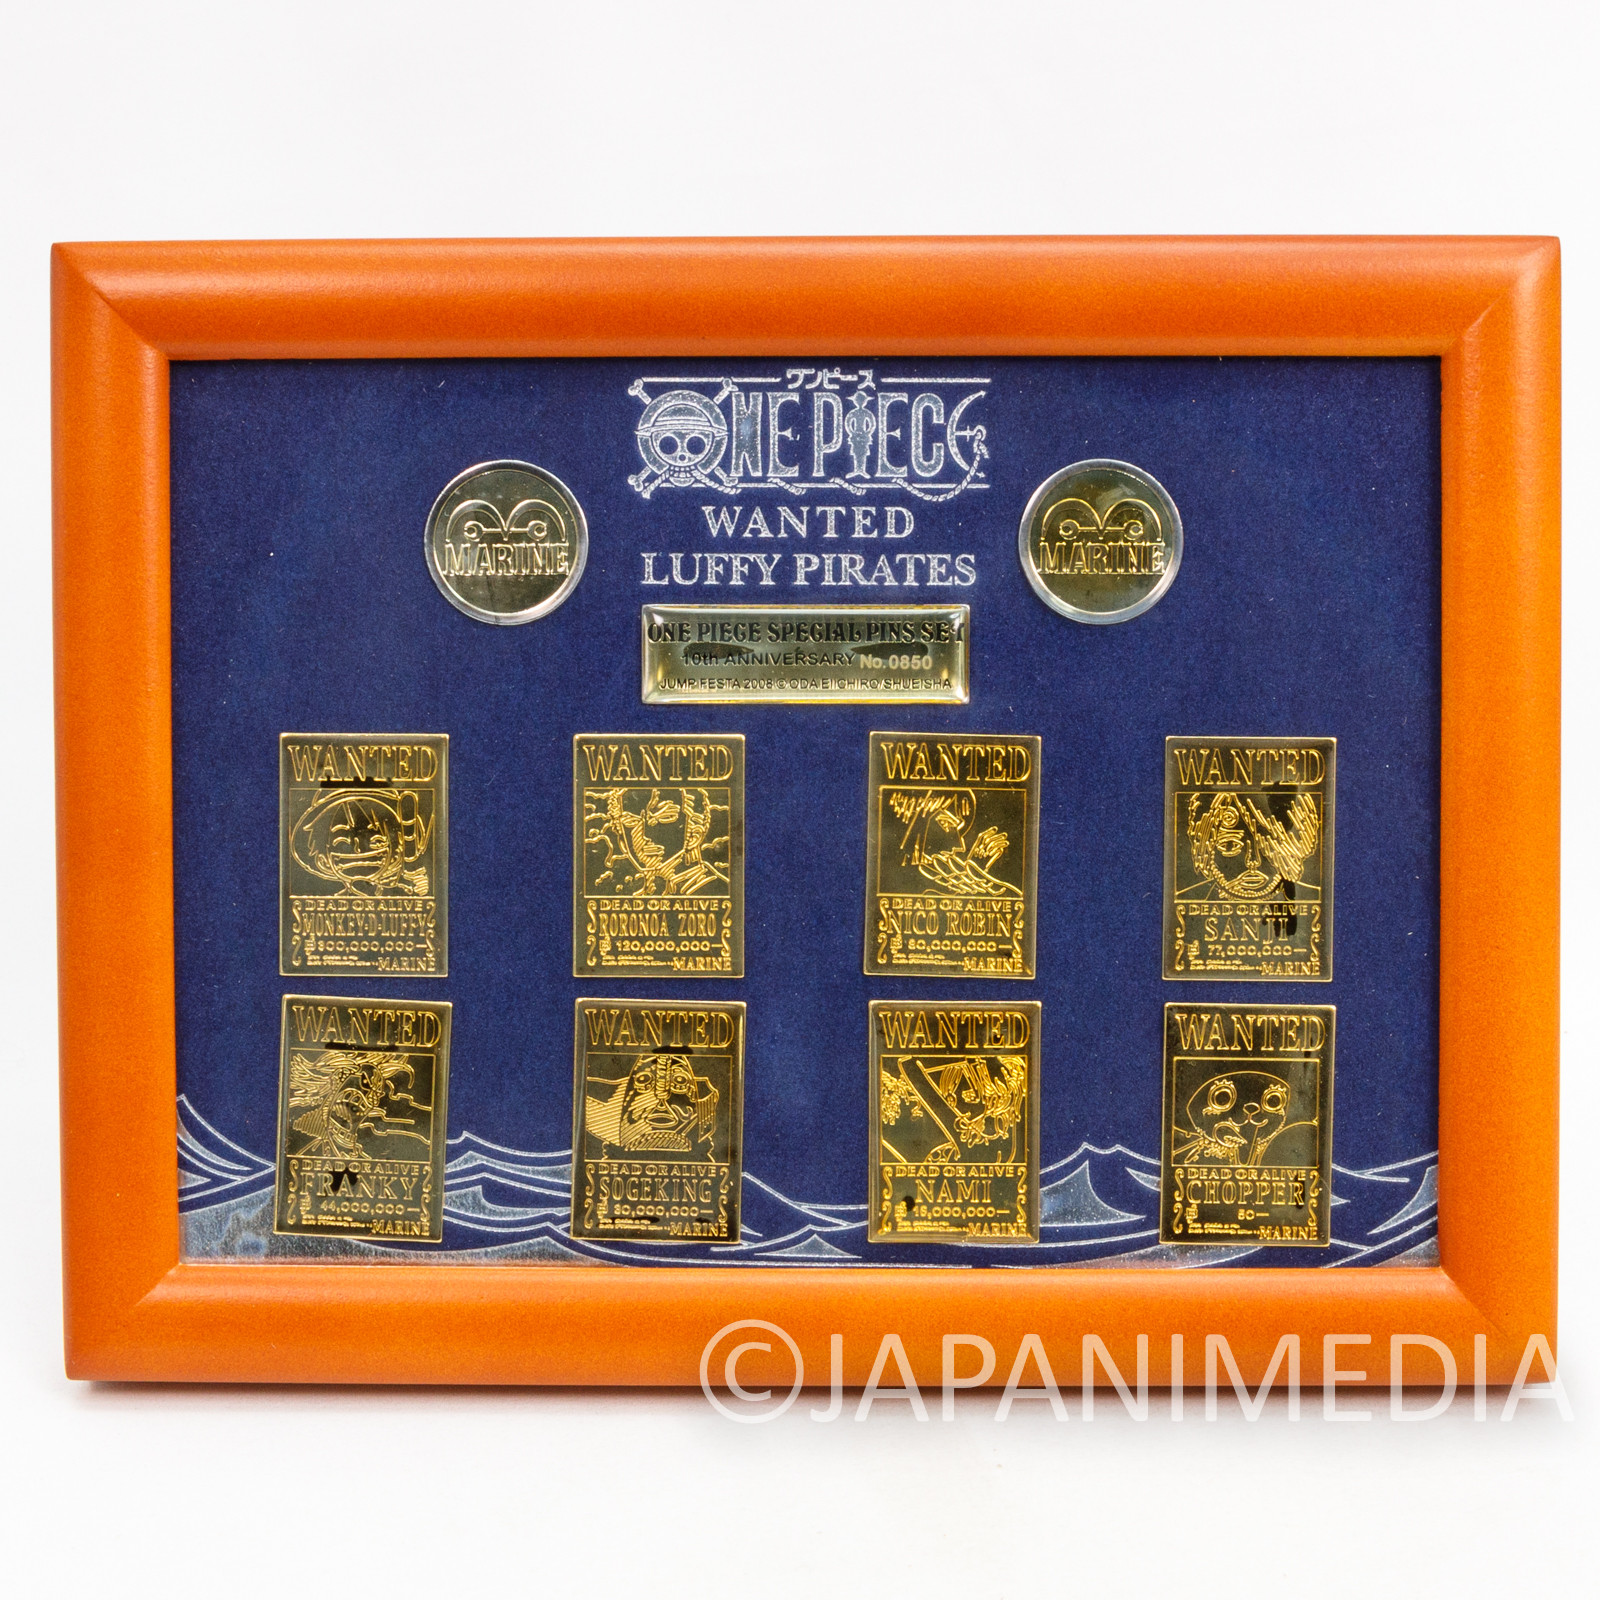 One Piece Wanted Luffy Pirates Special Pins Set 10th Anniversary Jump Festa 2008